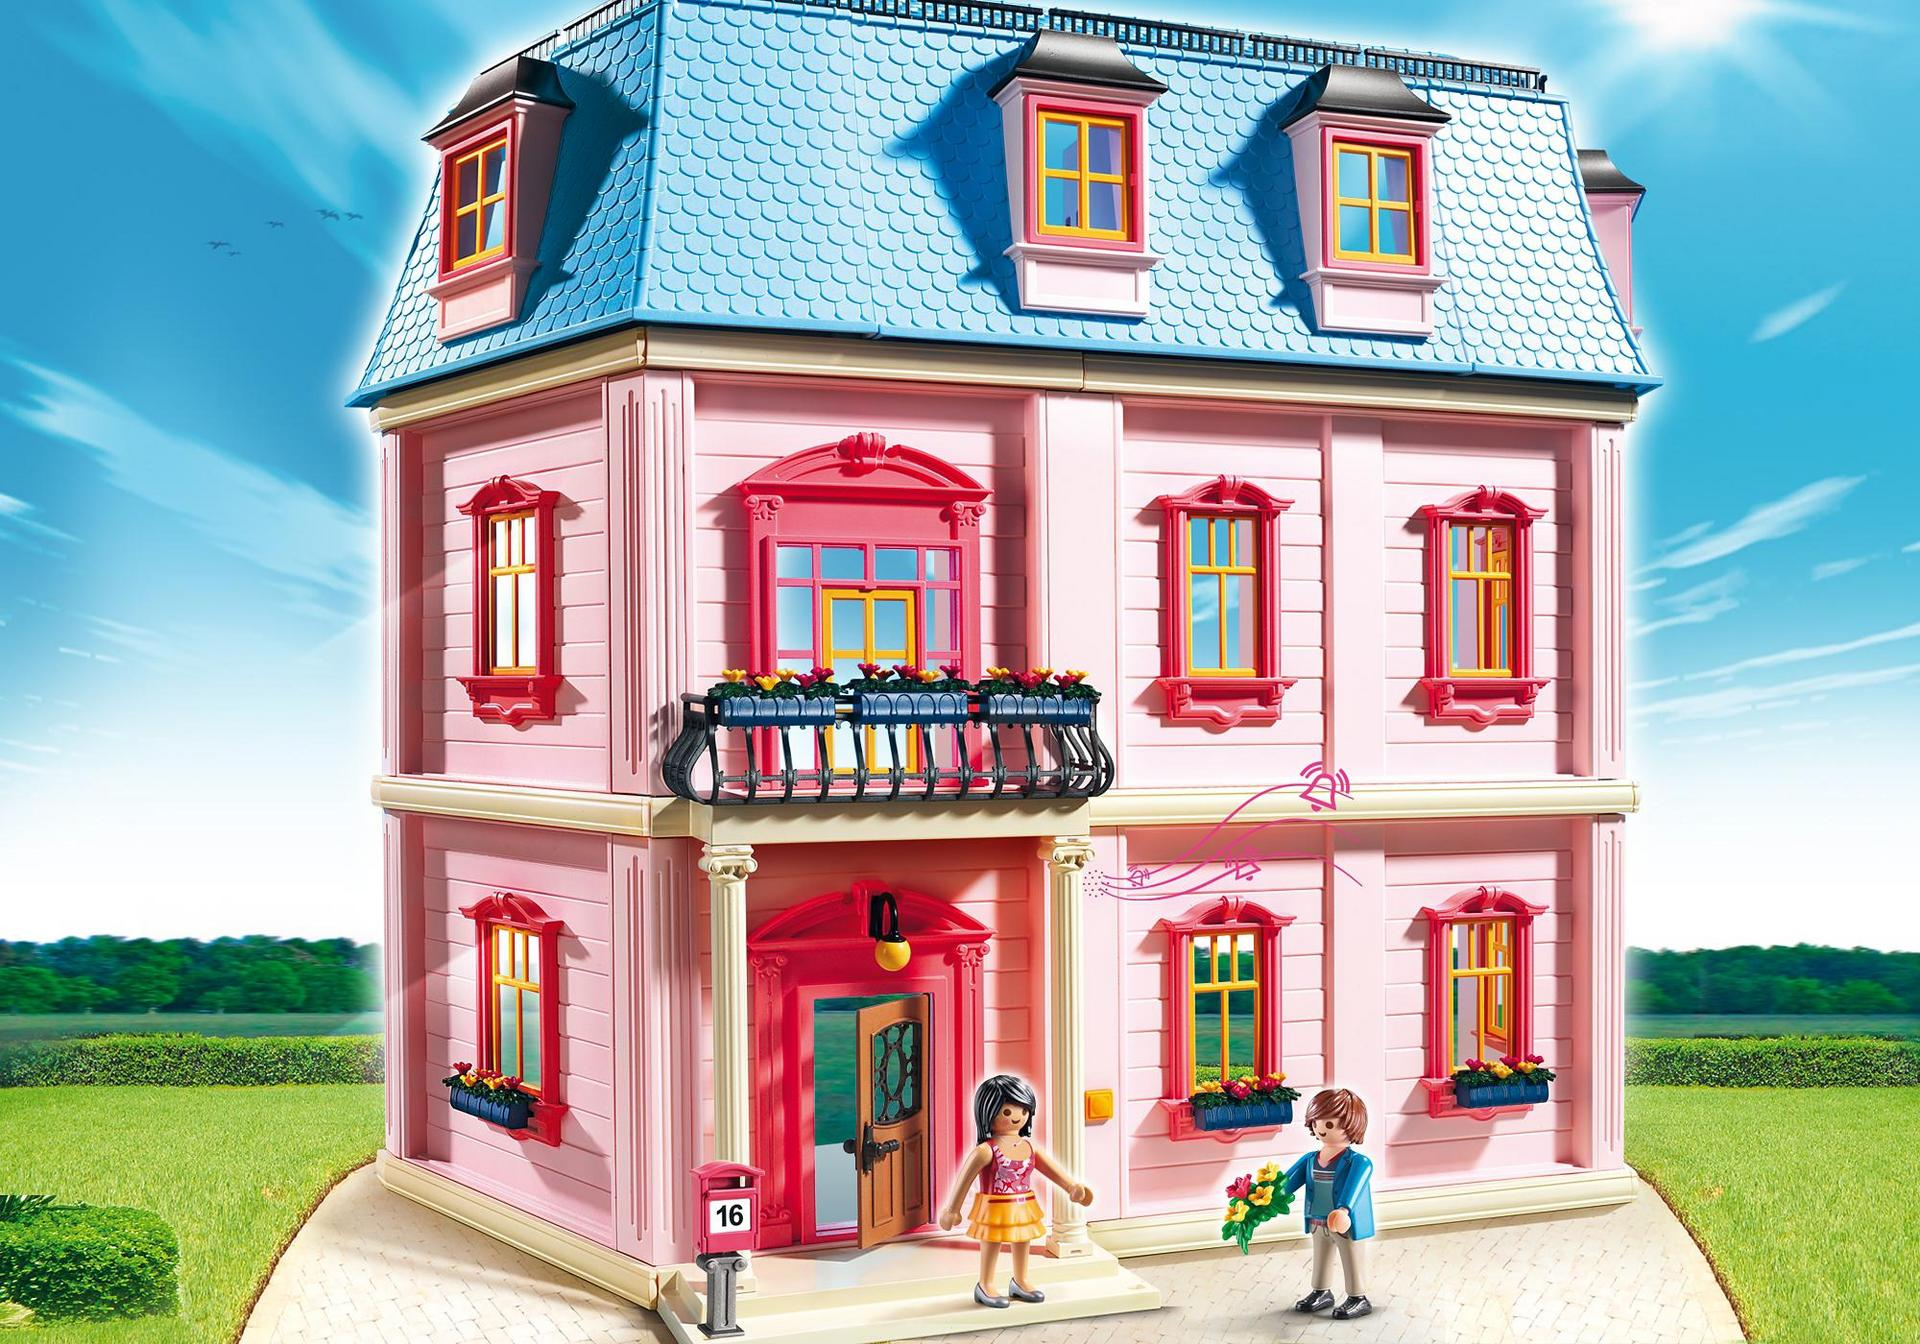 Maison traditionnelle 5303 playmobil france for Agrandissement maison moderne playmobil